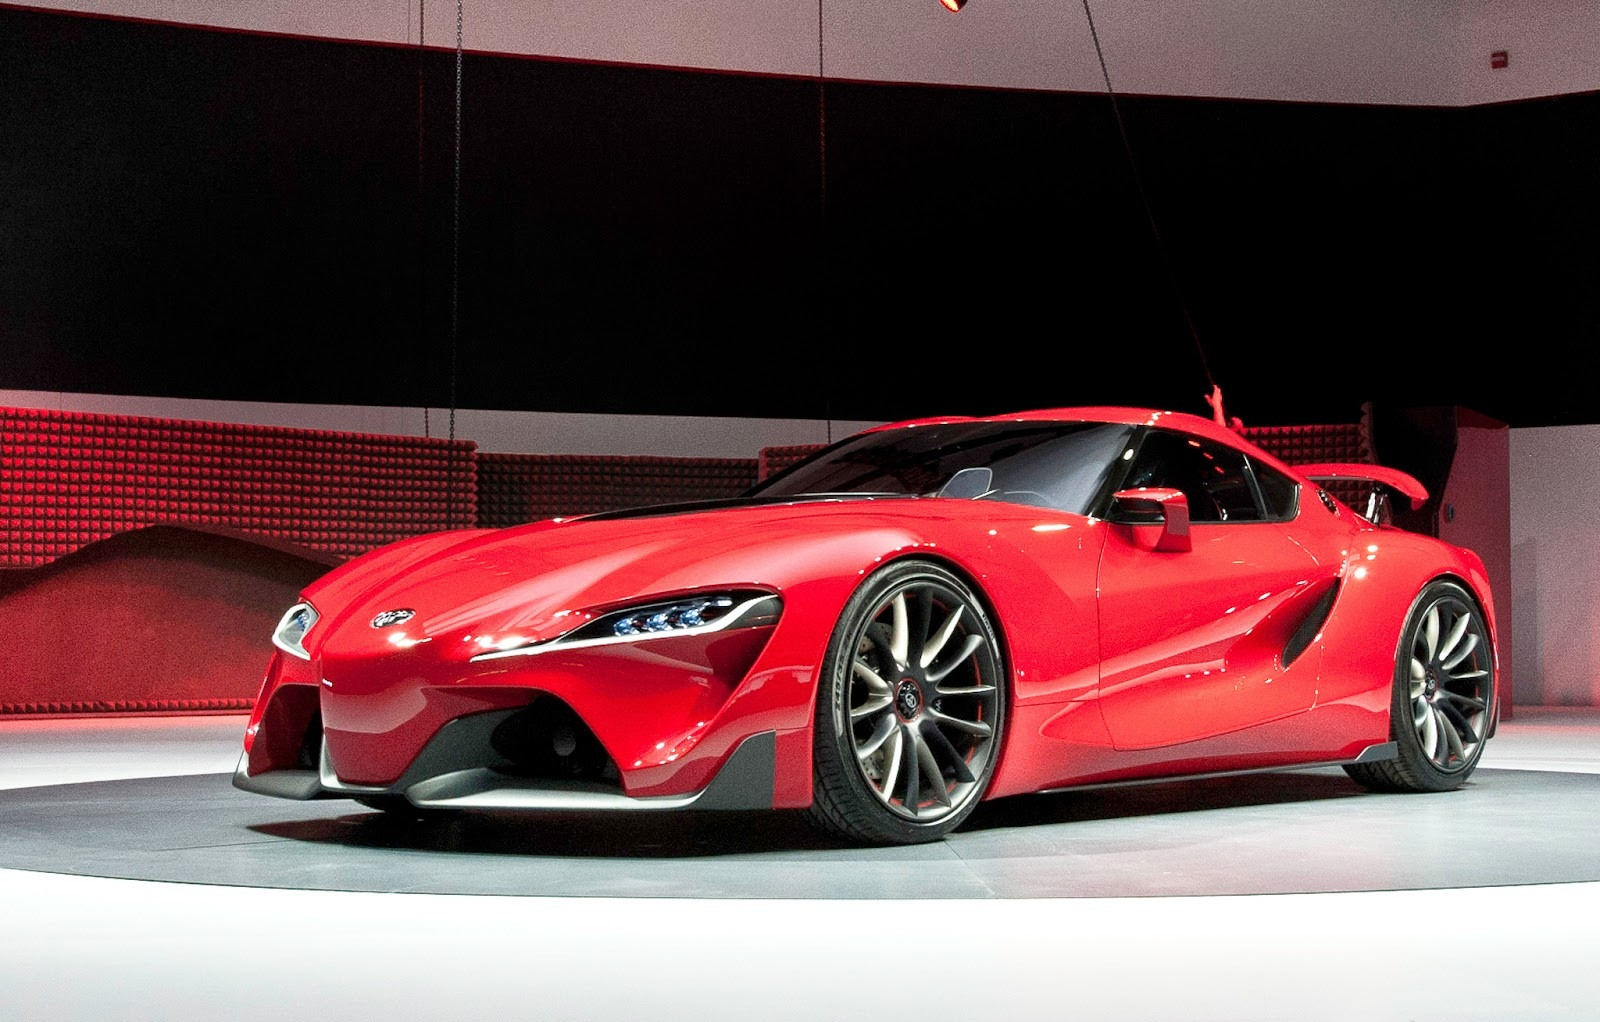 2016 toyota supra ft1 concept cars booster. Black Bedroom Furniture Sets. Home Design Ideas